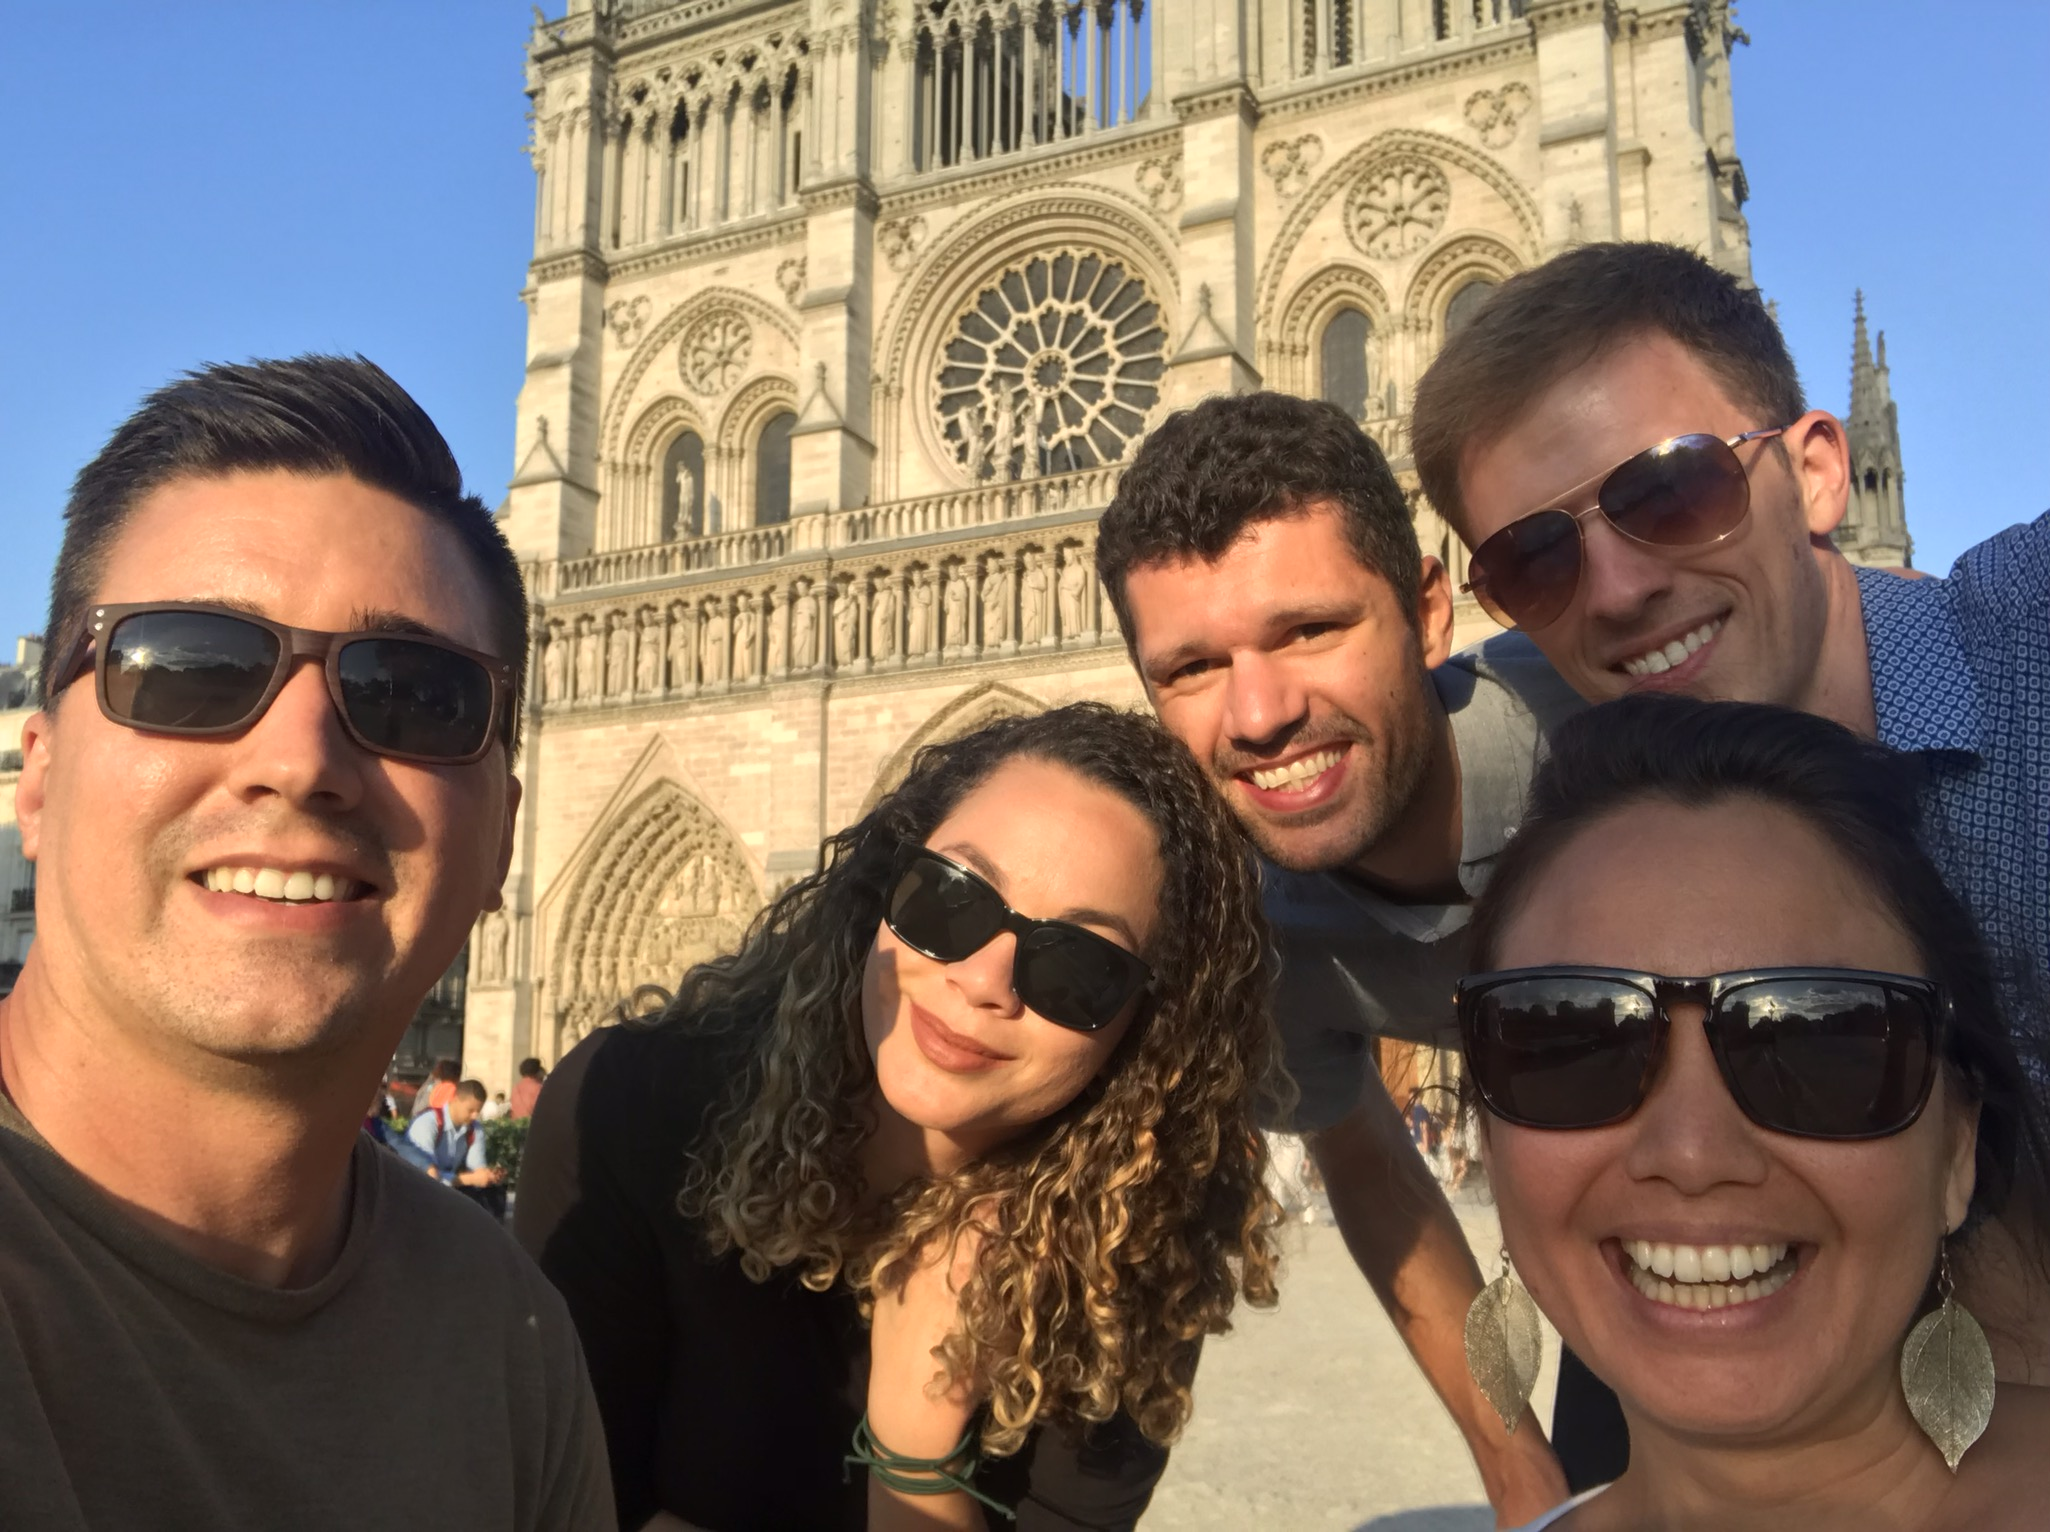 Notre-Dame before the concert!